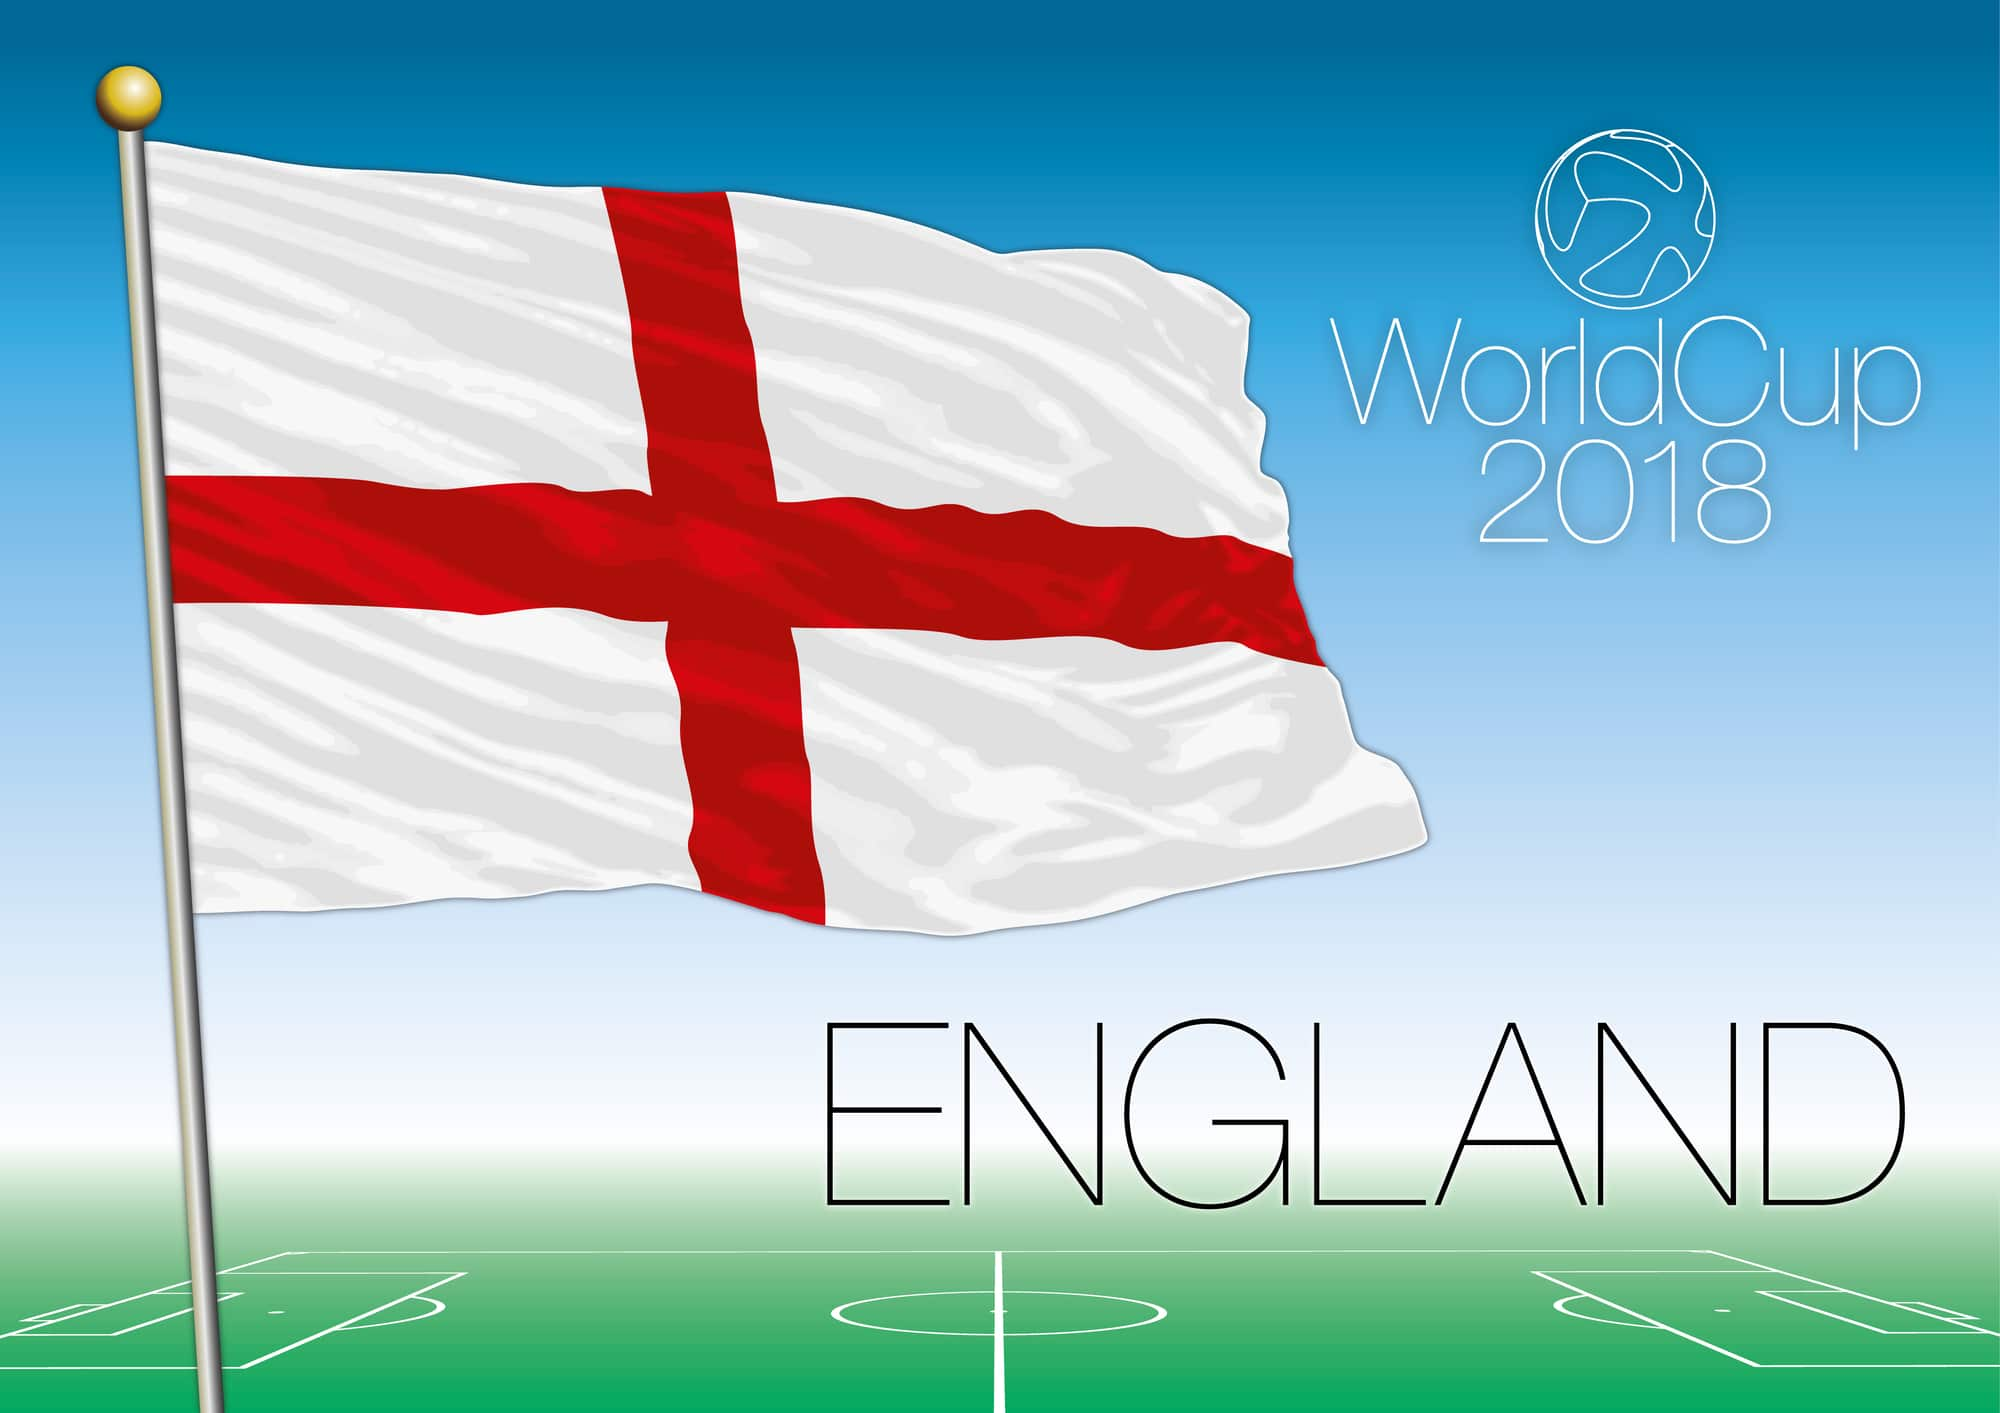 Tunisia vs England World Cup